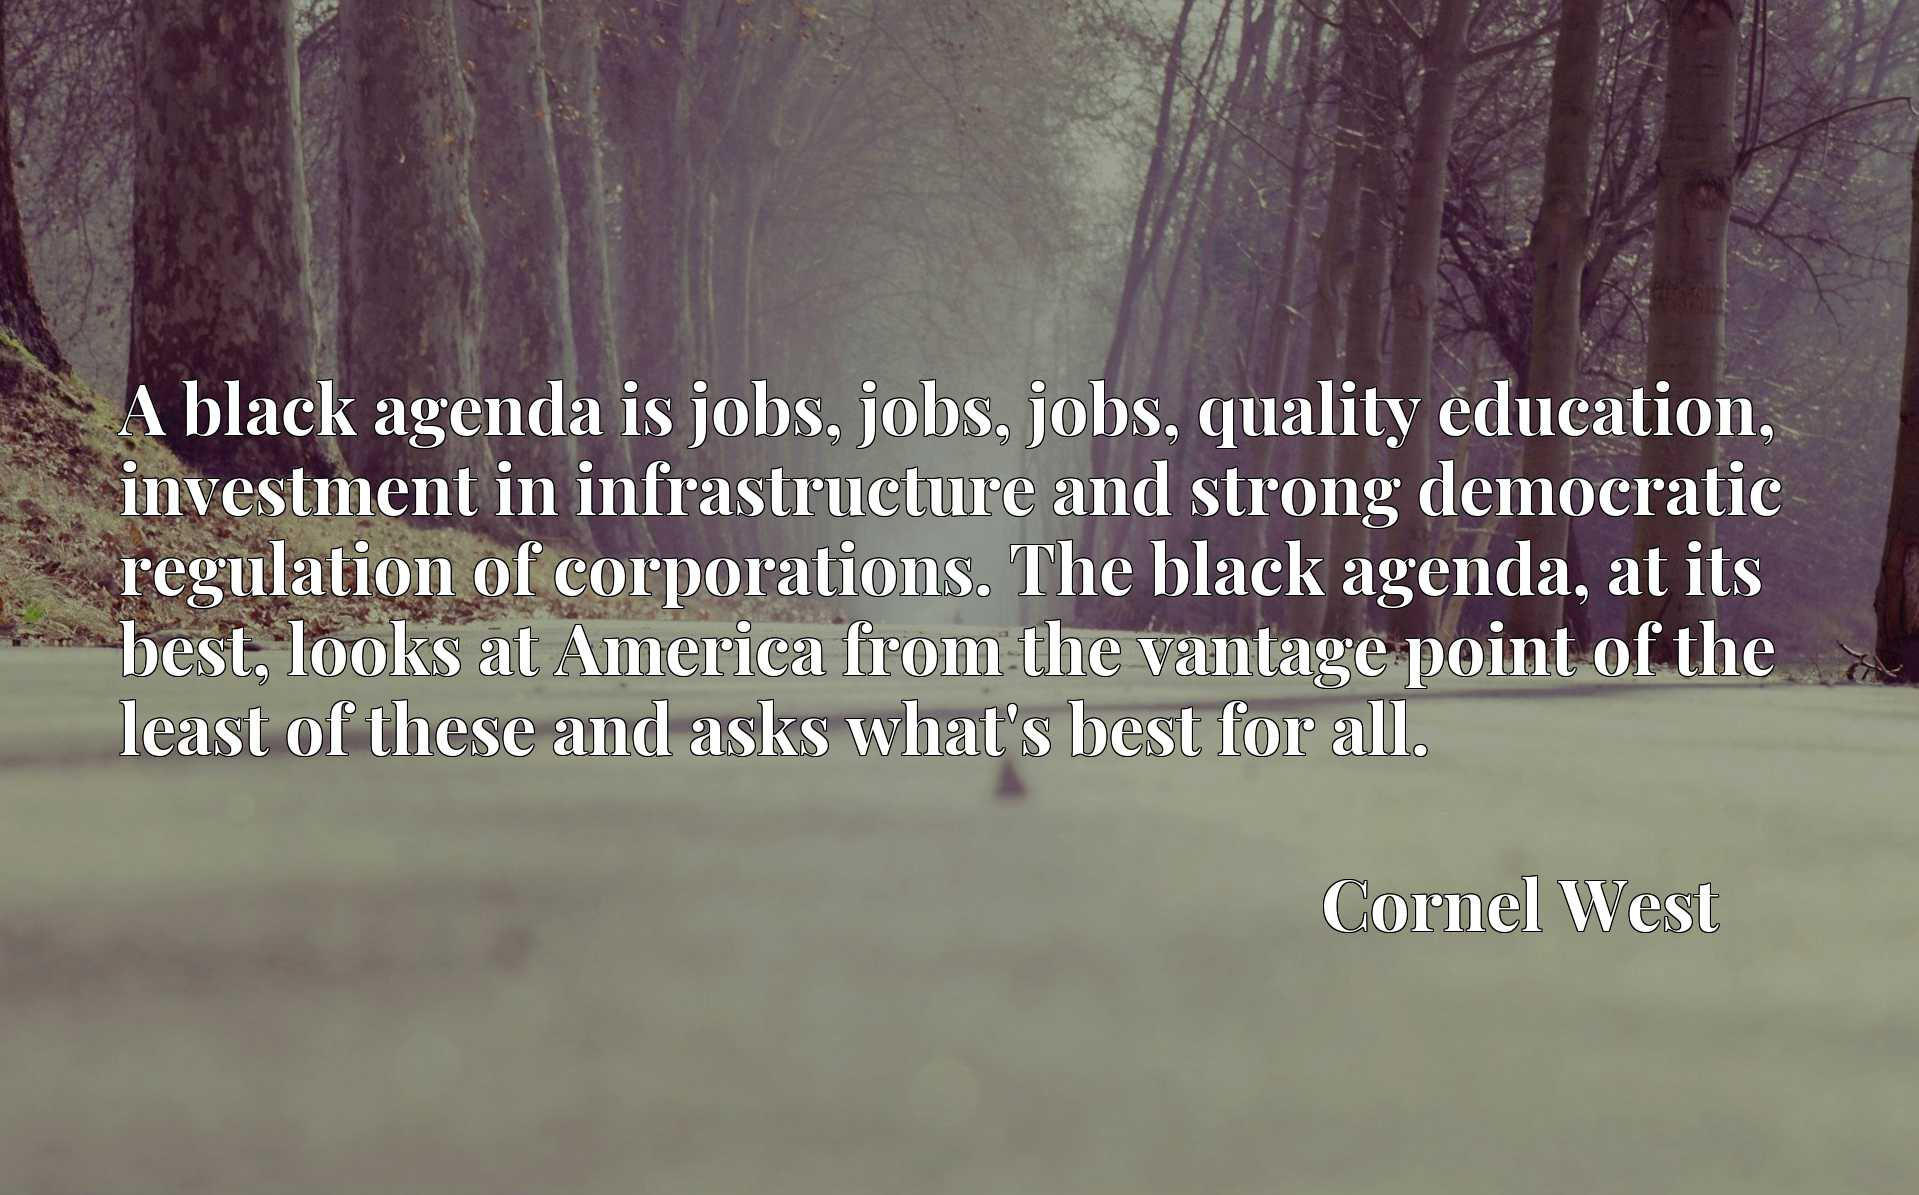 A black agenda is jobs, jobs, jobs, quality education, investment in infrastructure and strong democratic regulation of corporations. The black agenda, at its best, looks at America from the vantage point of the least of these and asks what's best for all.